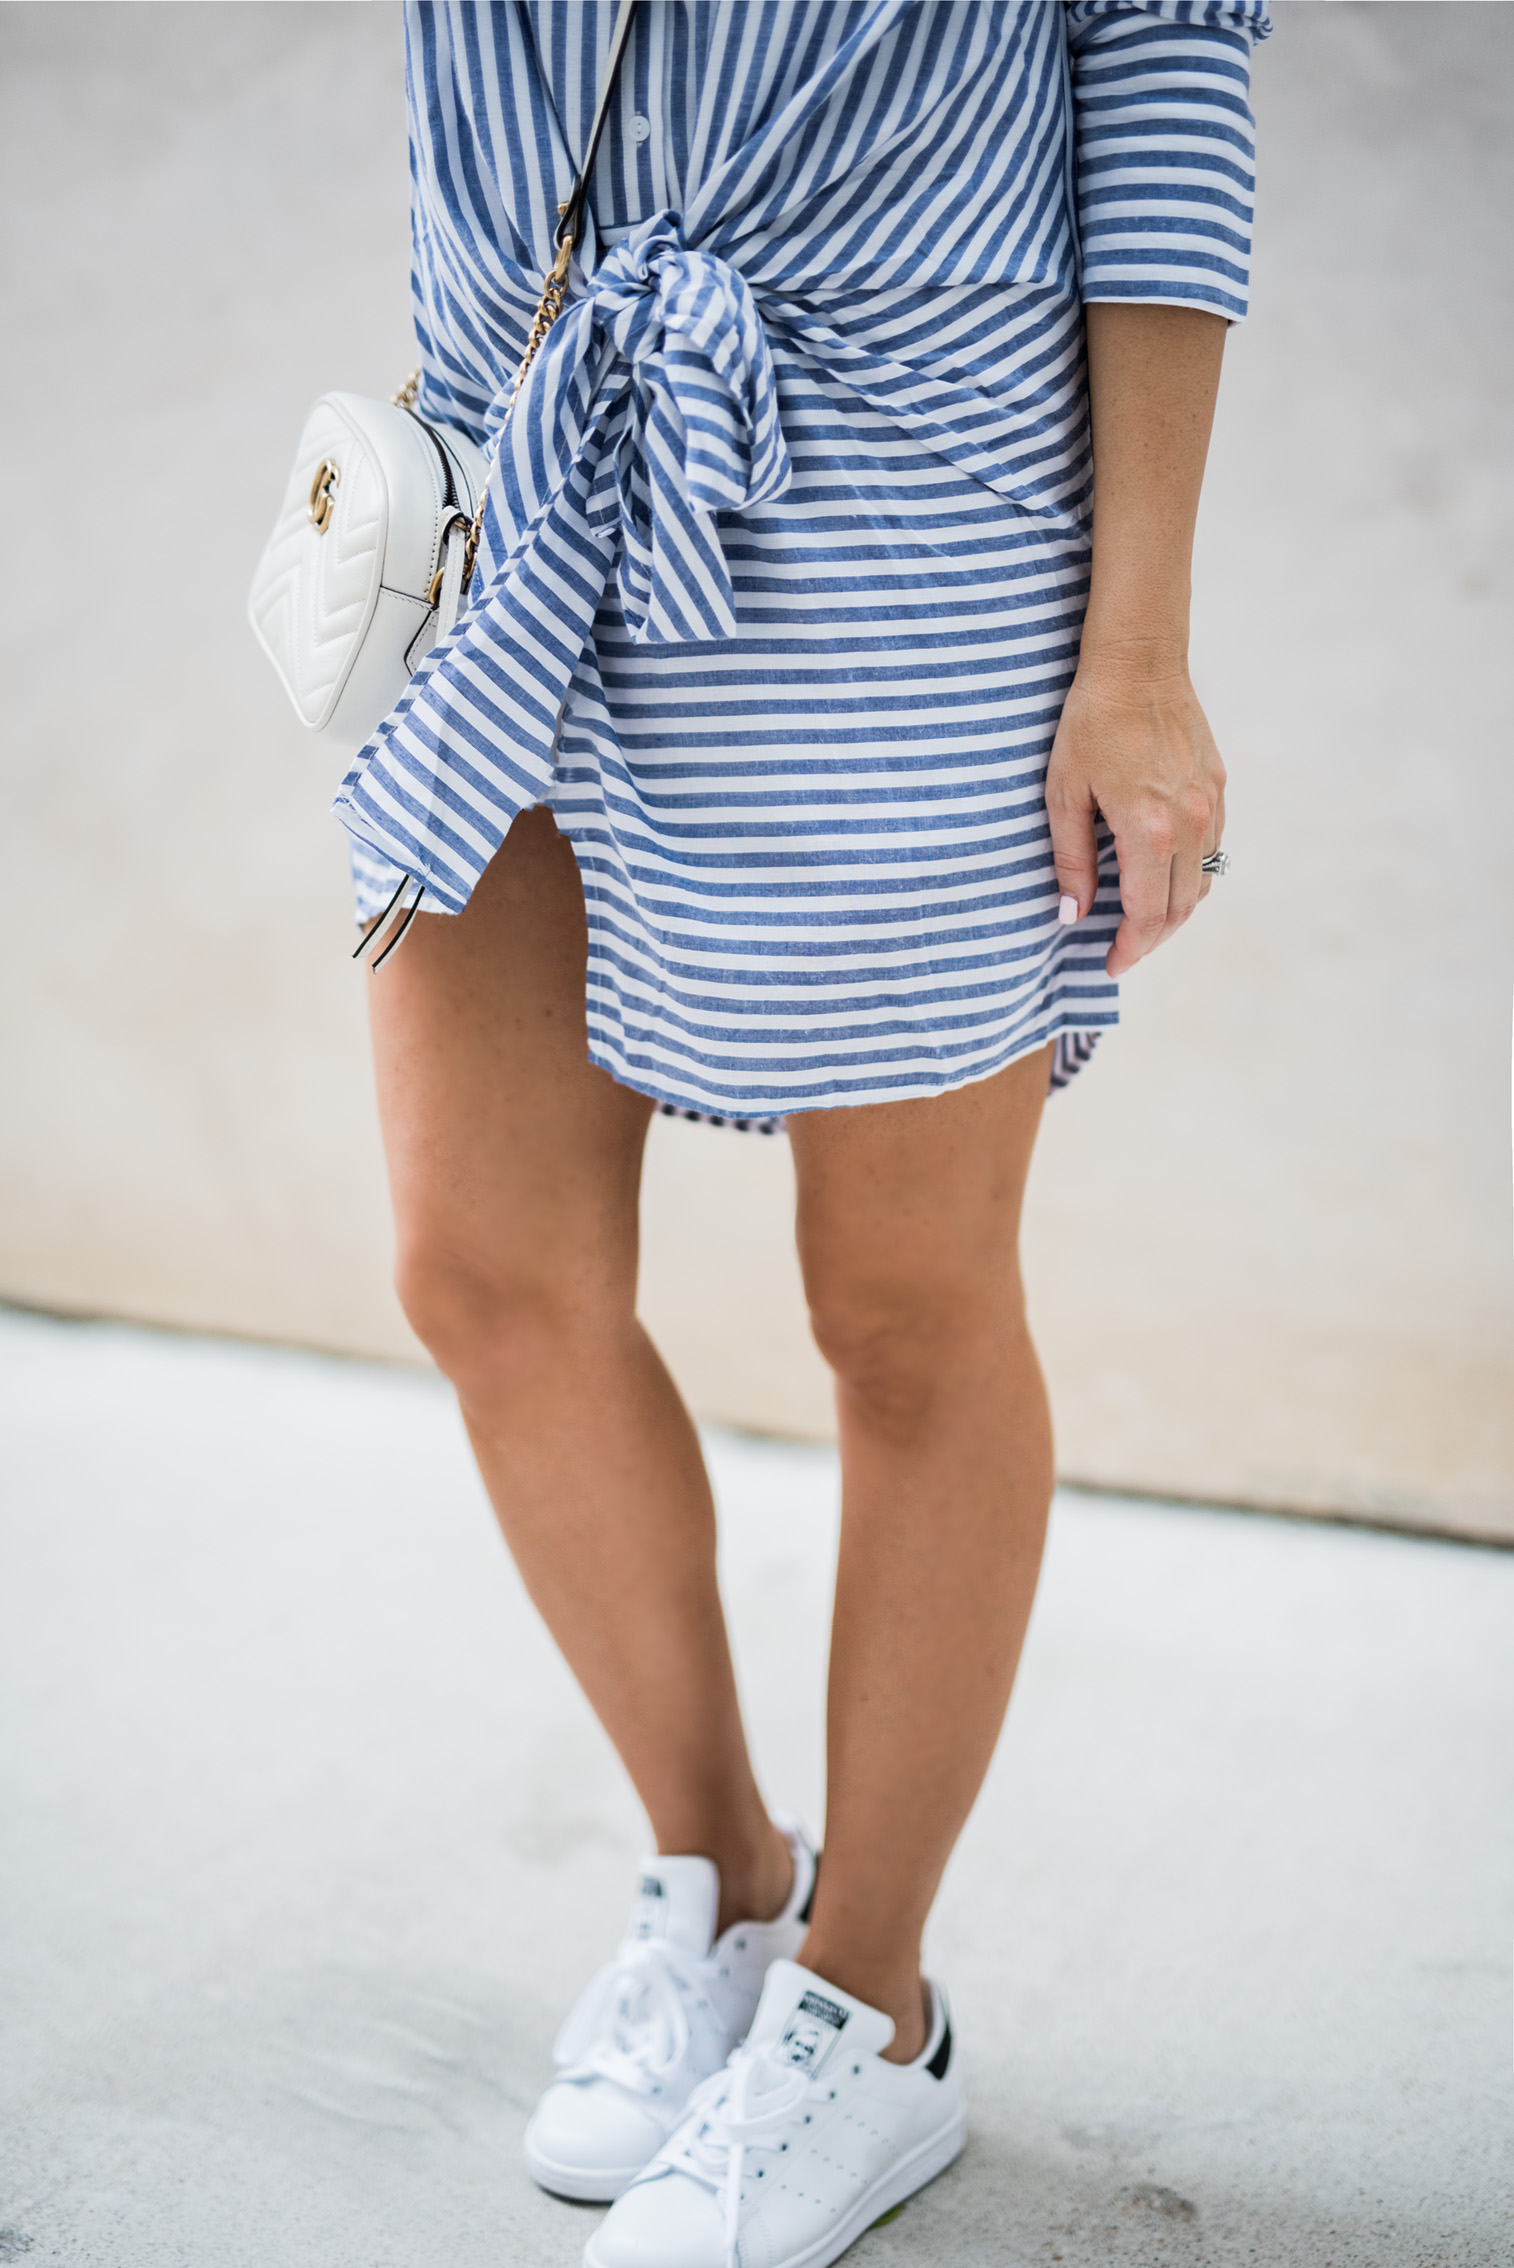 Tiffany Jais Houston fashion and lifestyle blogger | tie knot dress | gucci bag, stan smith sneakers, street style